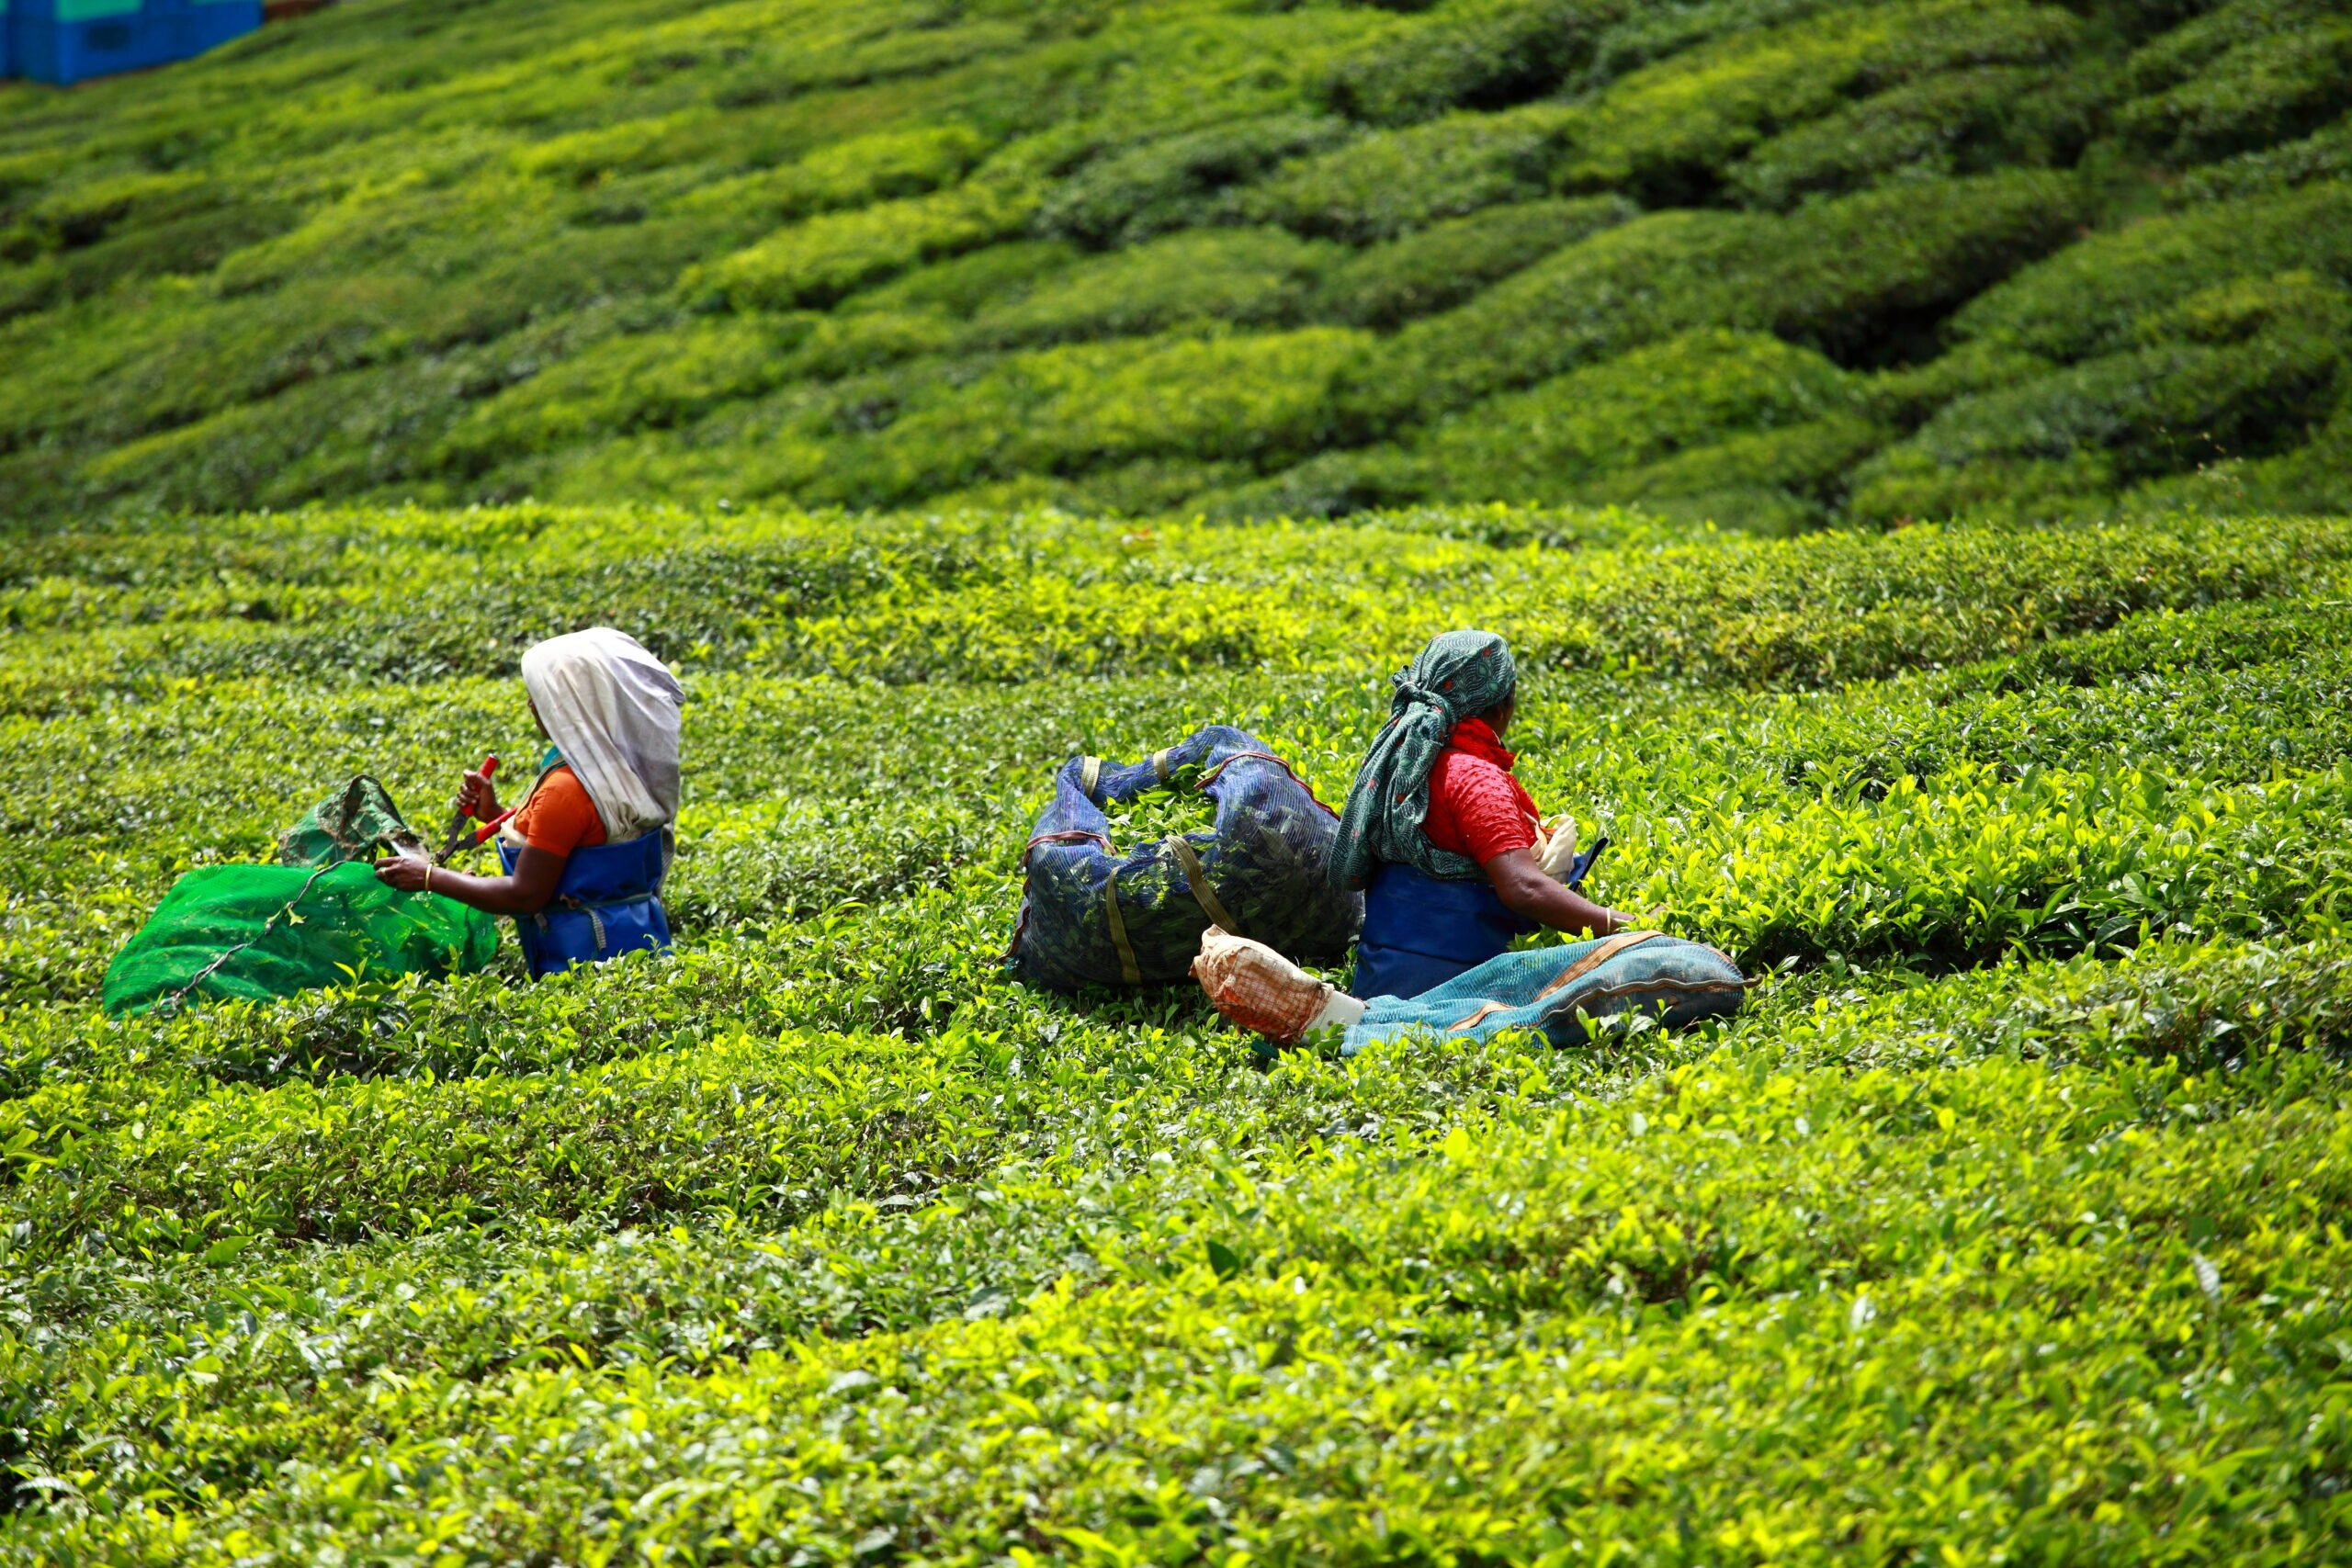 Learn About The Ecology & Culture Of Munnar In Our 5 Day Ecology & Culture Tour Of Munnar